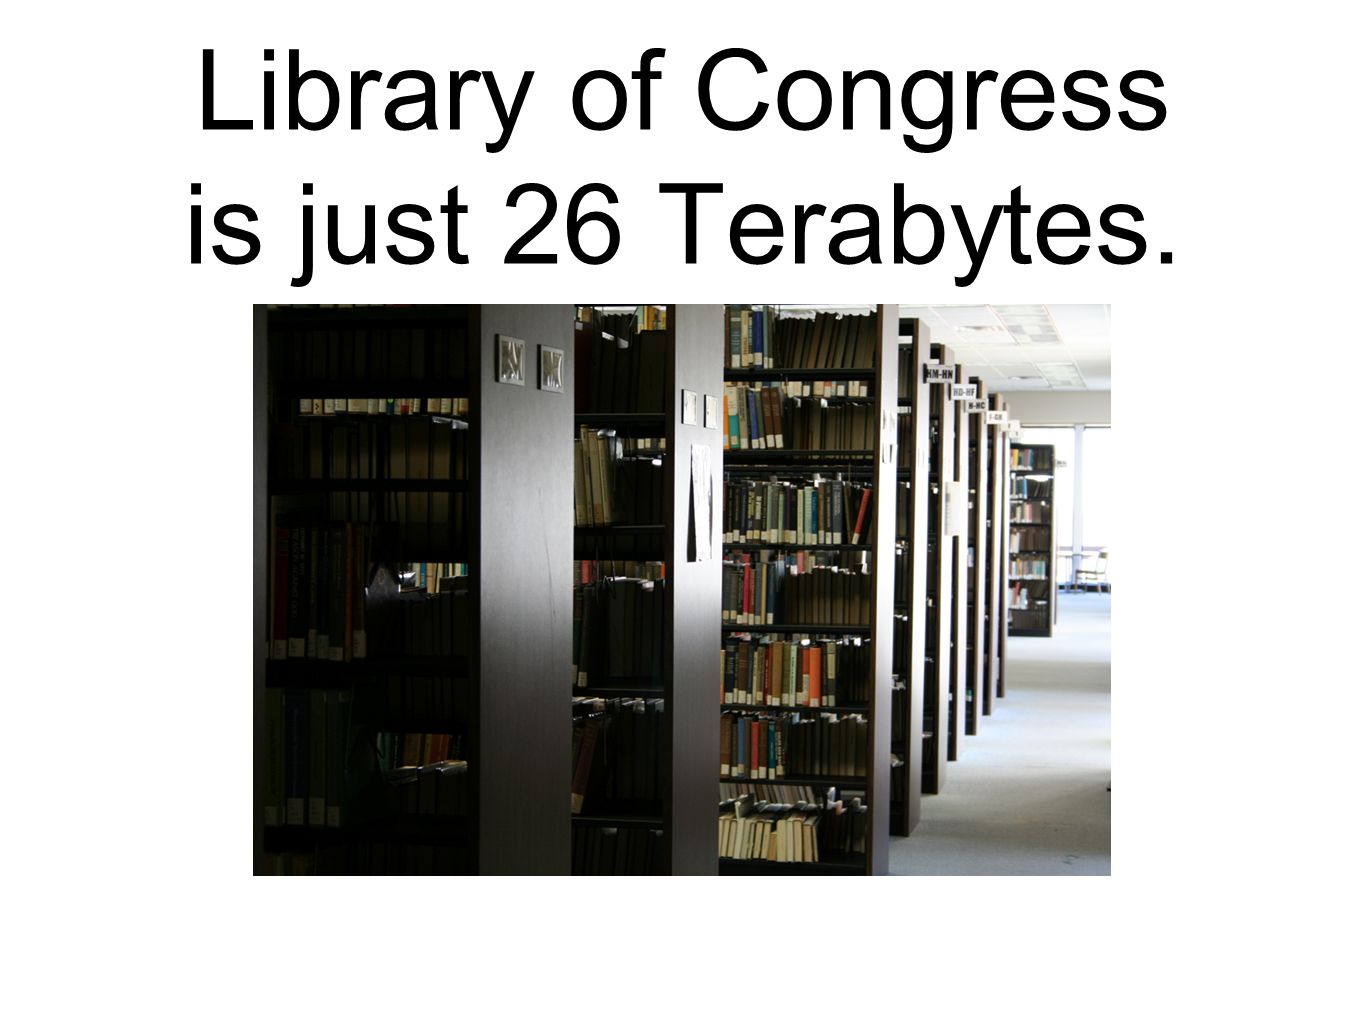 Library of Congress is just 26 Terabytes.